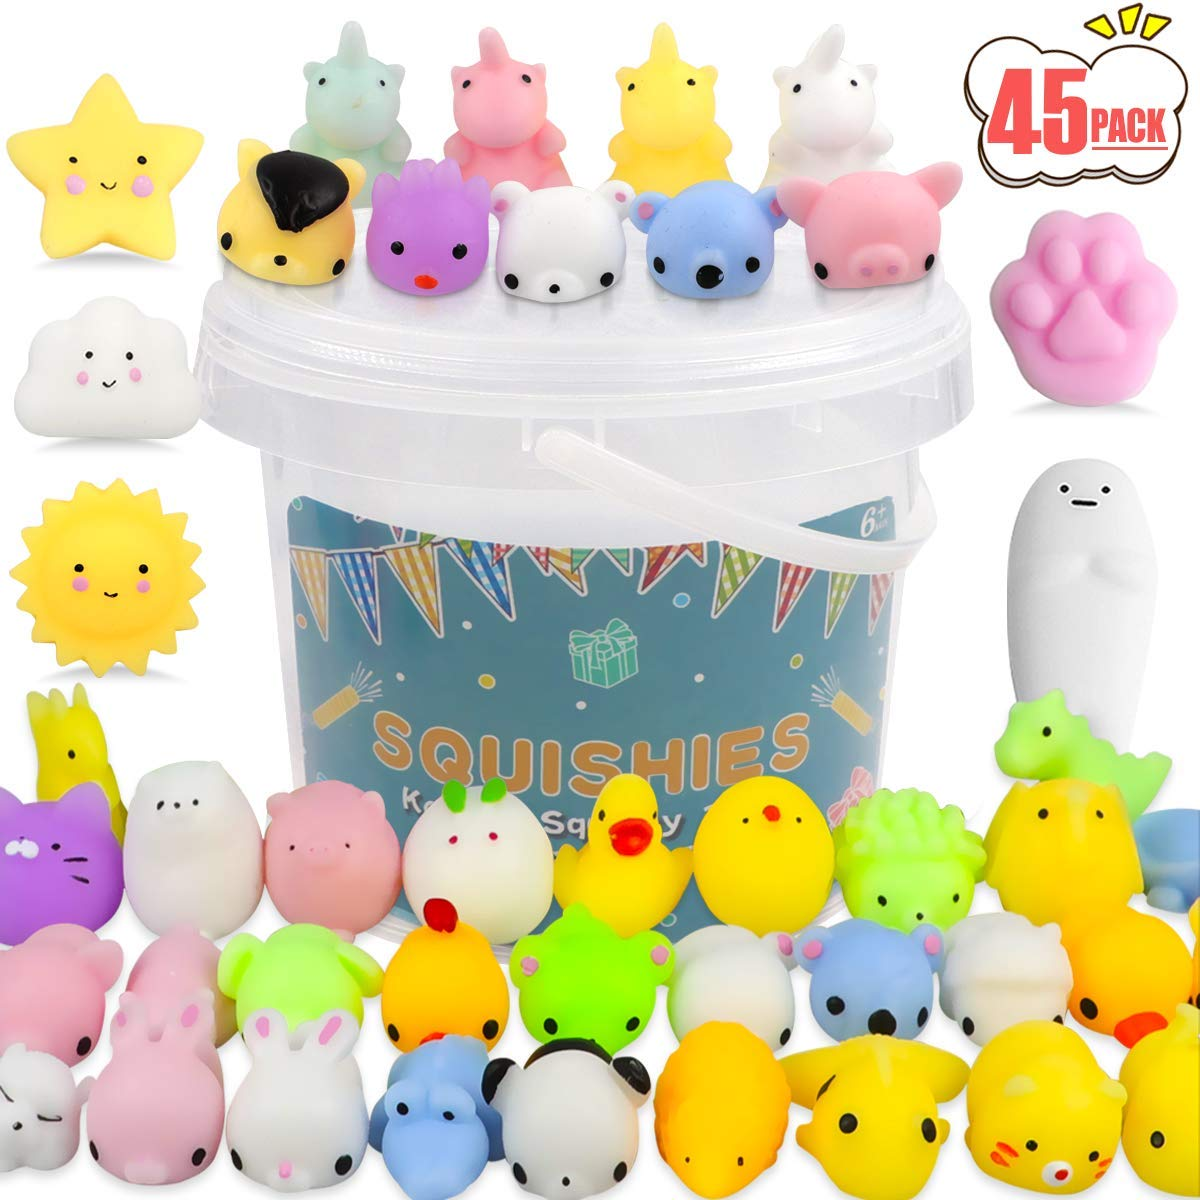 POKONBOY 45 Pack Mochi Squishy Toys Mini Squishies, Squishy Party Favors for Kids Unicorn Cat Squishy Kawaii Animal Squishies Stress Relief Toys Birthday Gifts Easter Egg Fillers